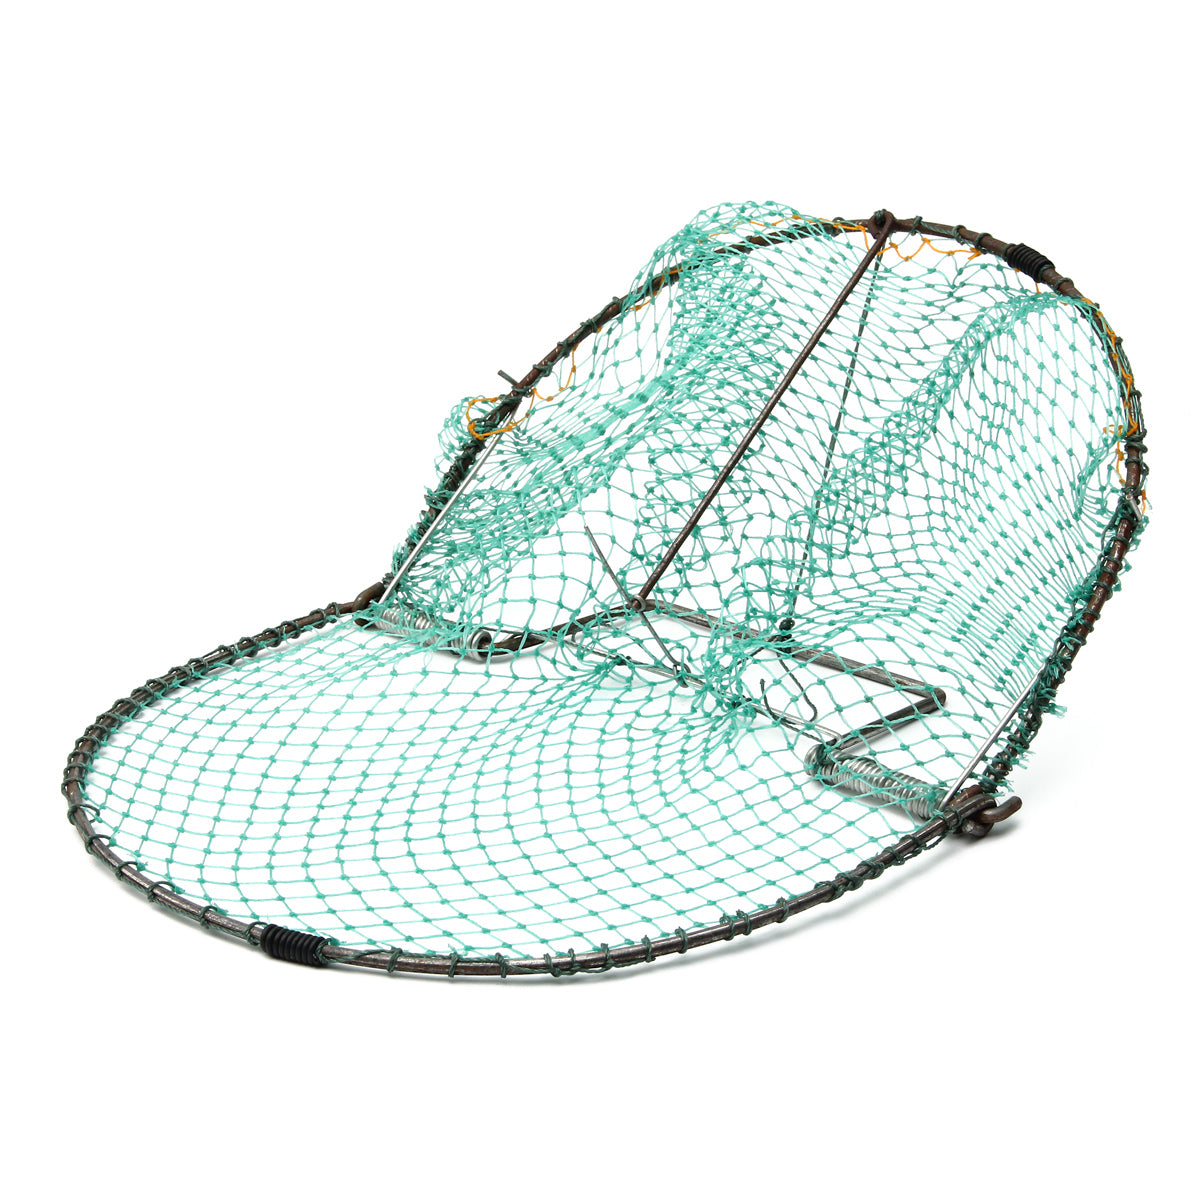 Costbuys  12inch Bird Net Effective Humane Live Trap Hunting Sensitive Quail Humane Trapping Hunting 300mm Garden Supplies Pest